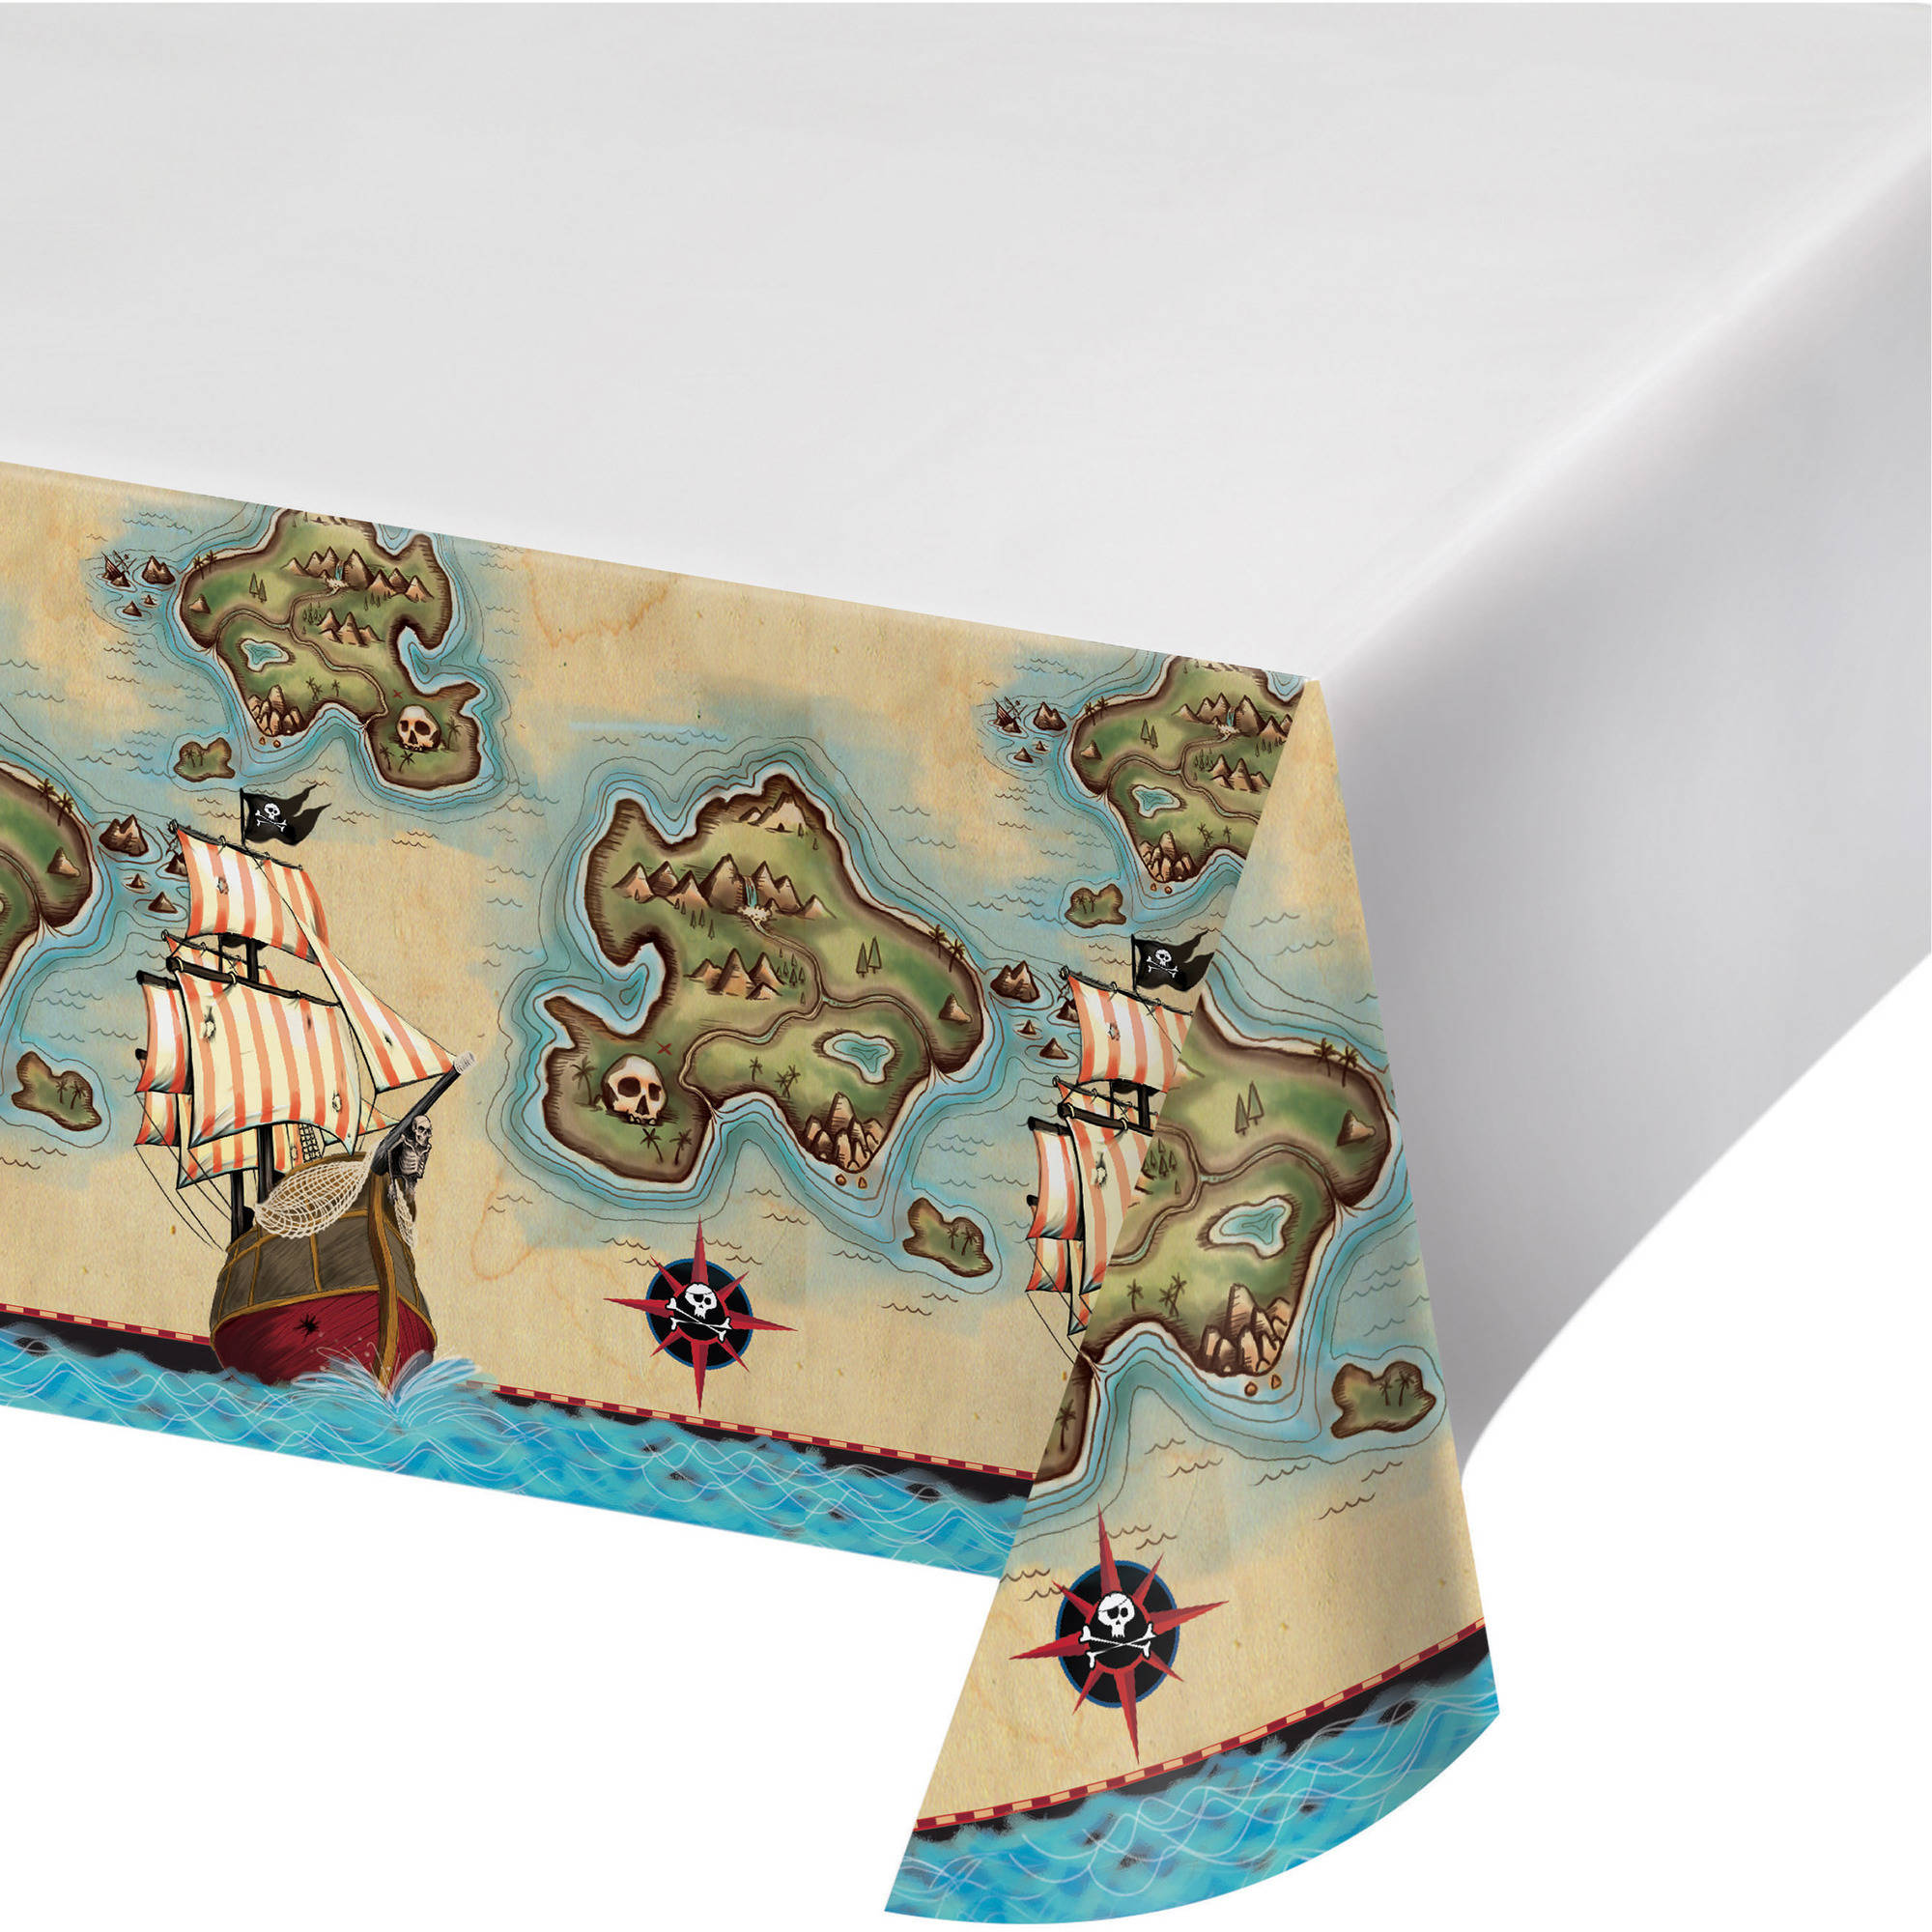 Pirate's Map Plastic Tablecloth, each